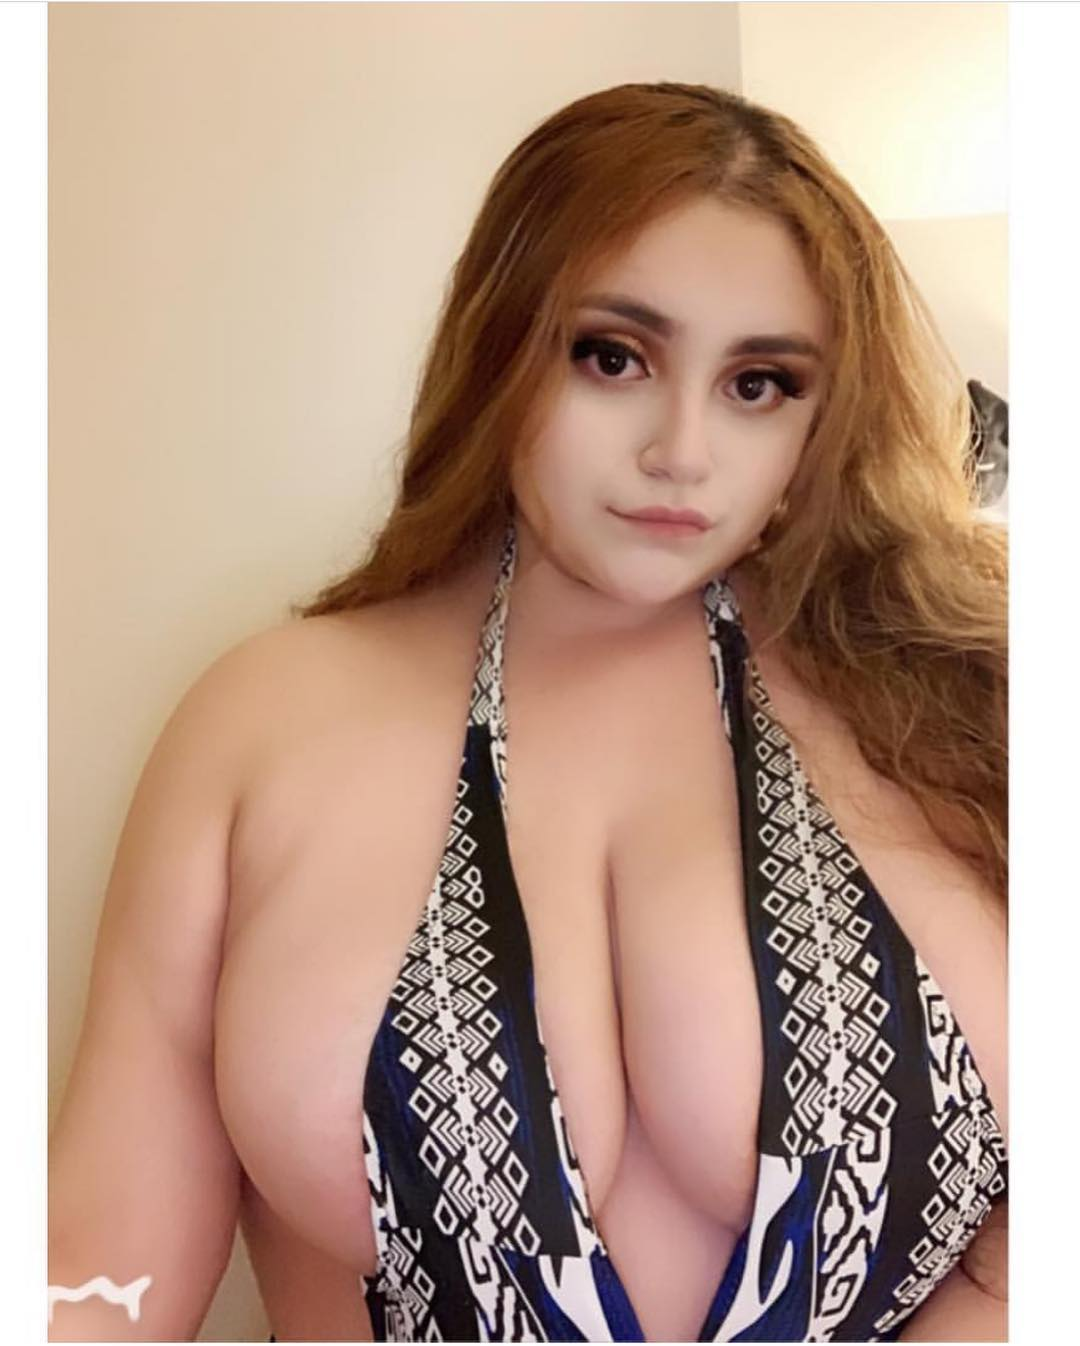 Anali Sanchez Nude Onlyfans Leaked!0089